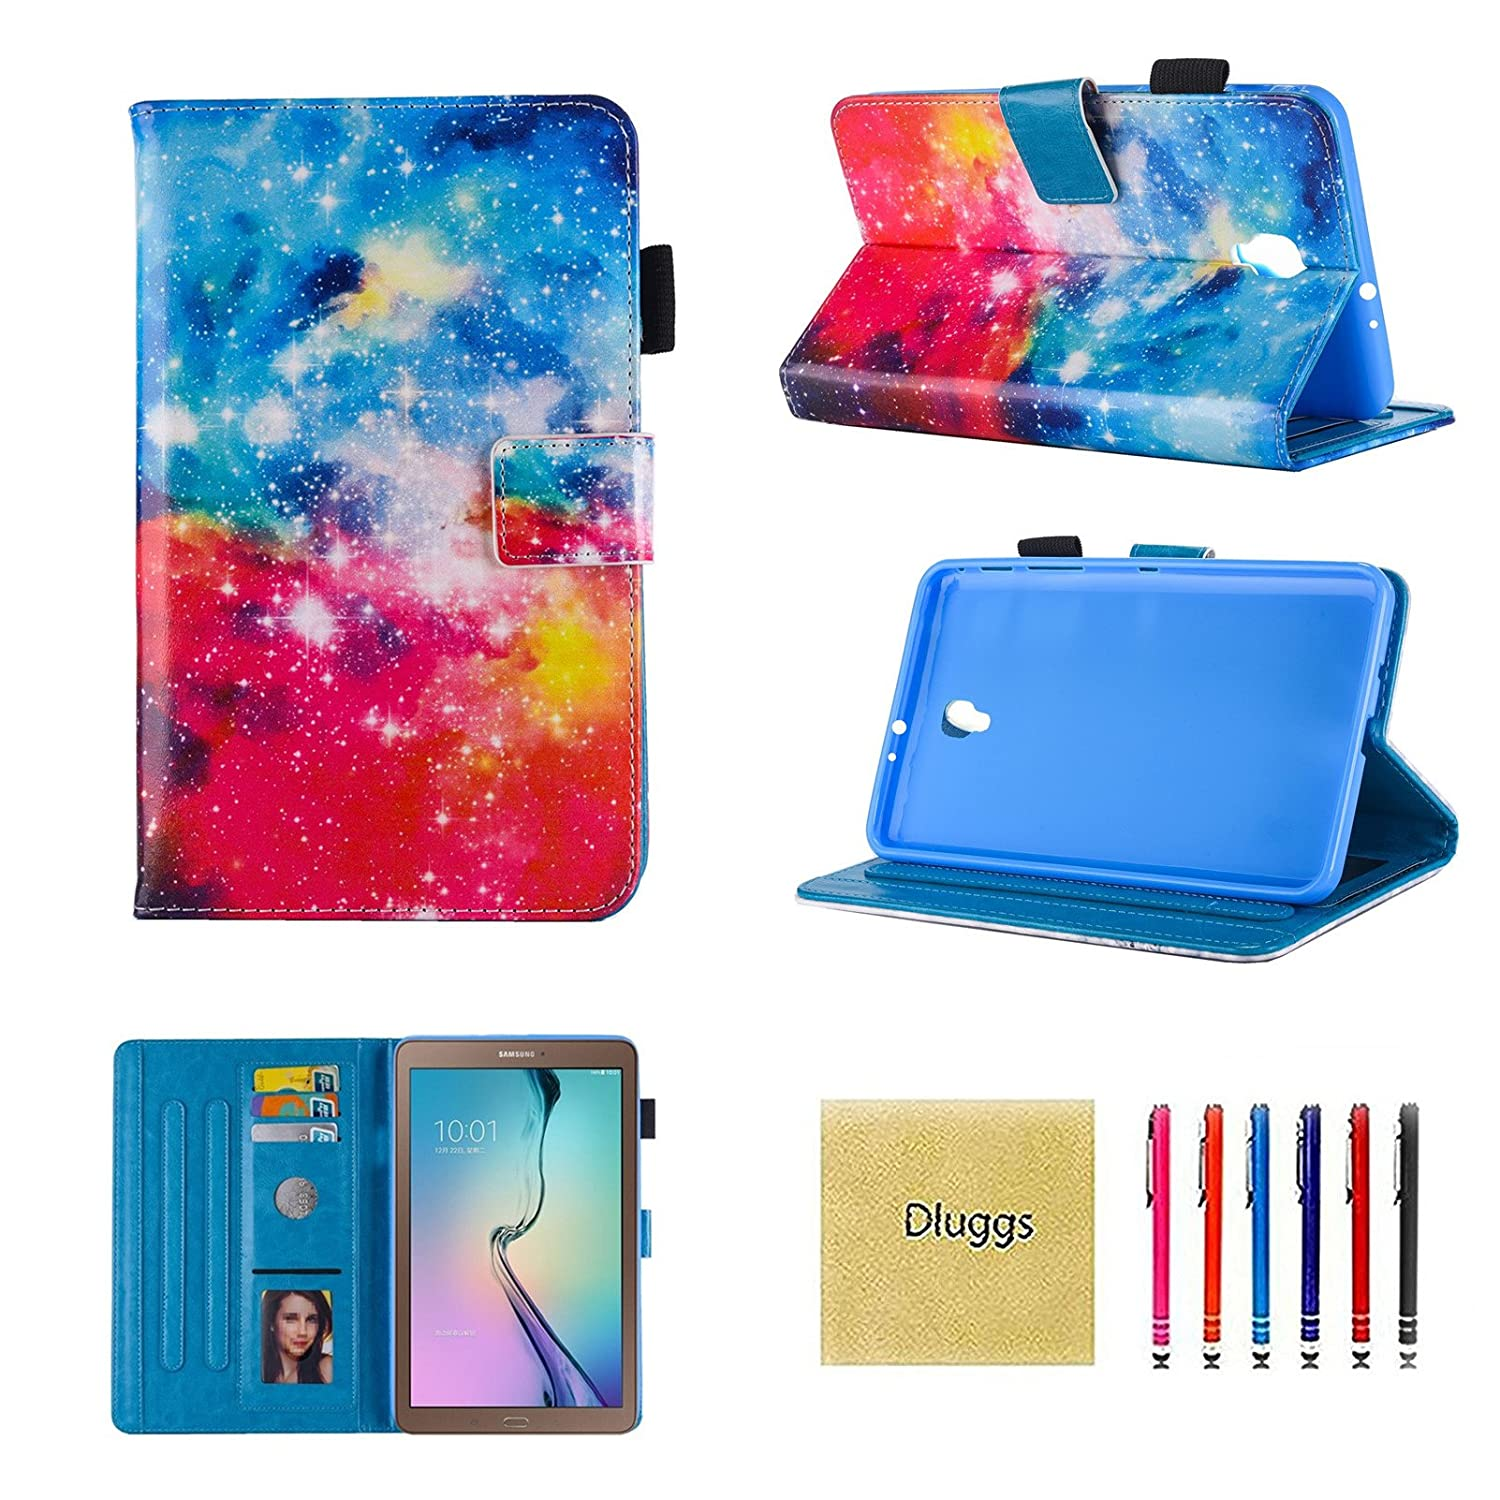 Dluggs Samsung Galaxy Tab A 8.0 2017 Case, T380 Case, Lightweight PU Leather Folio Flip Stand Wallet Case for Samsung Galaxy Tab A 8.0 Inch (2017 Release) SM-T380/T385 Tablet, Love MLGS0773